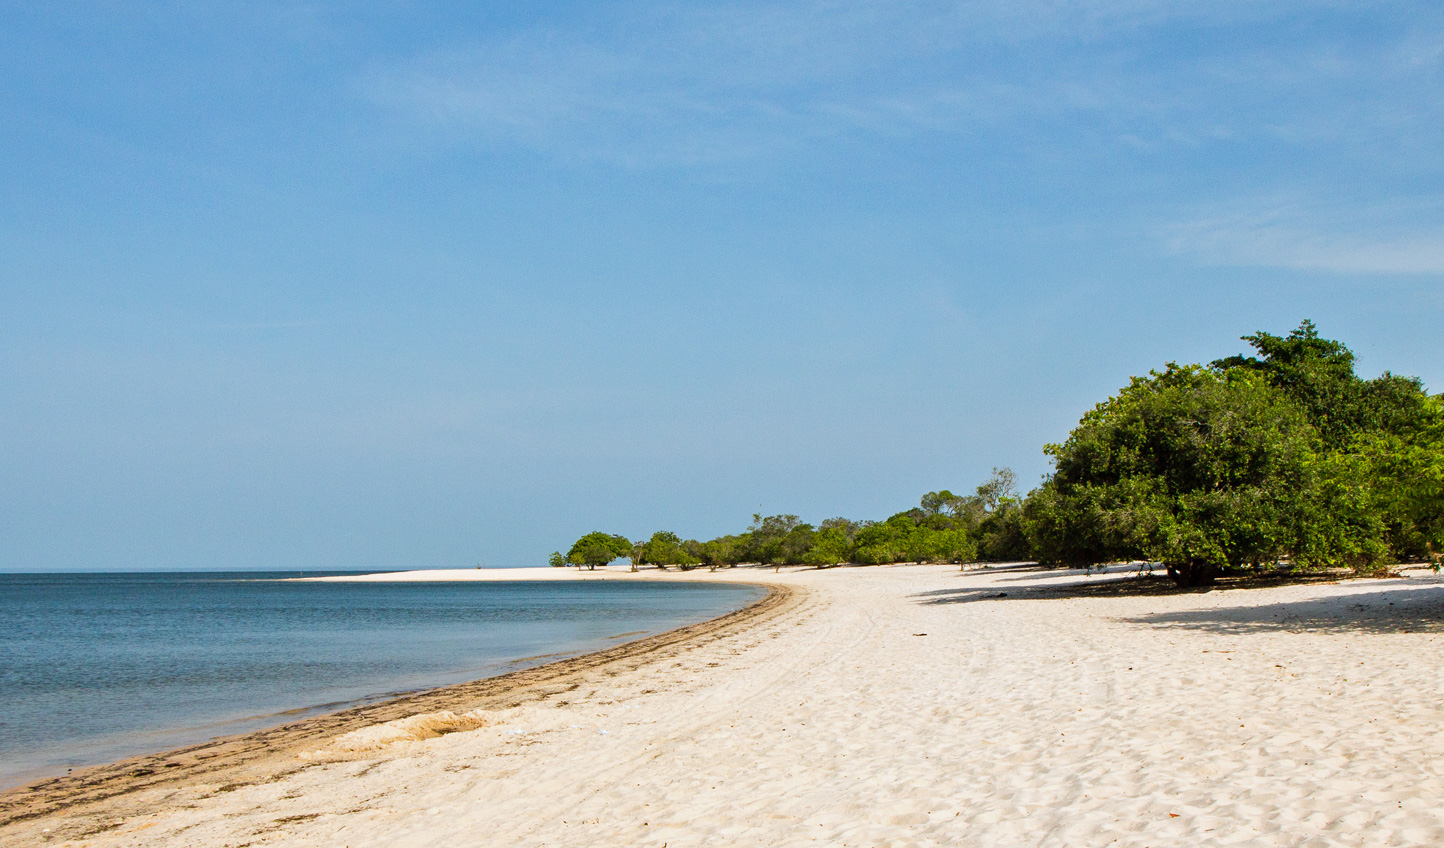 Discover pristine white beaches, lining the banks of the Tapajos River